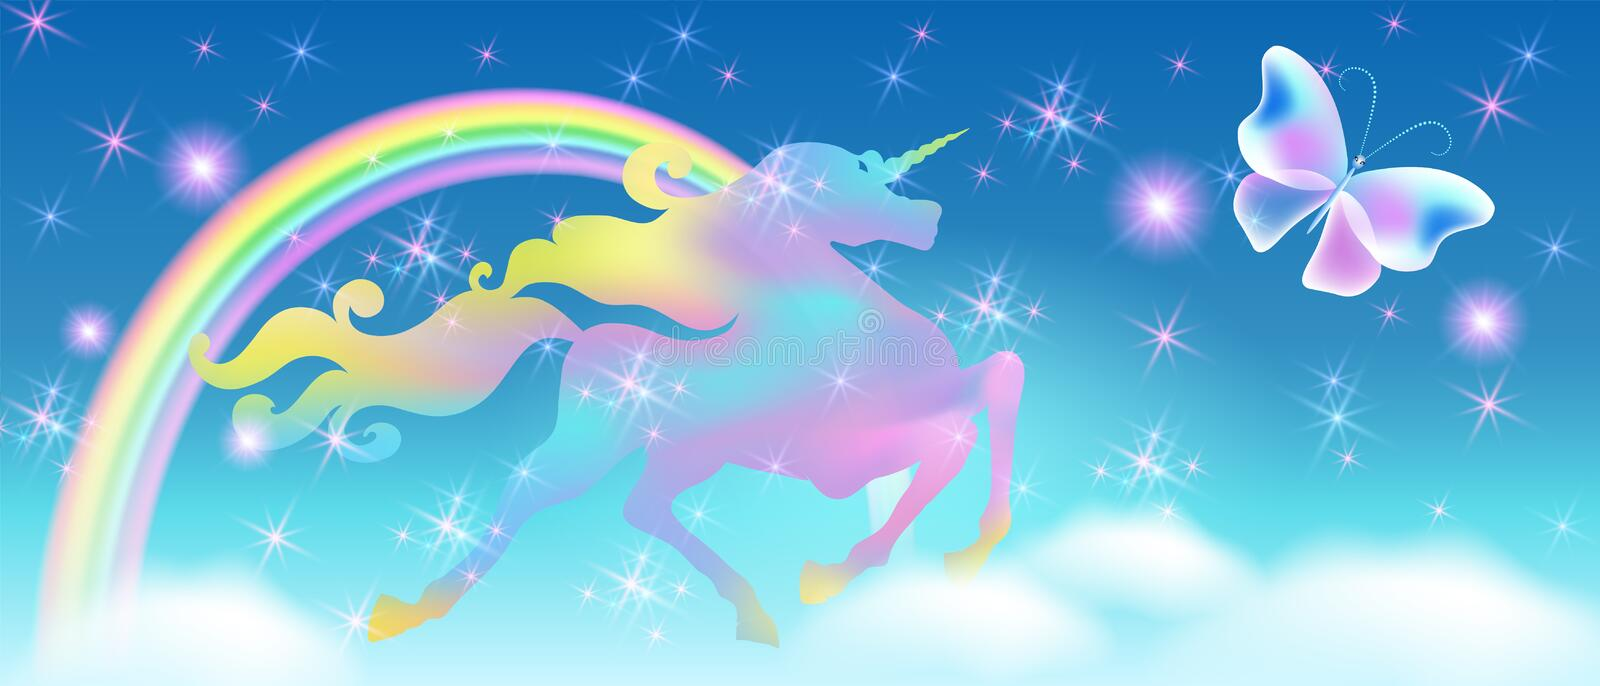 Rainbow in the sky and galloping unicorn with luxurious winding mane against the background of the iridescent universe with royalty free stock photo